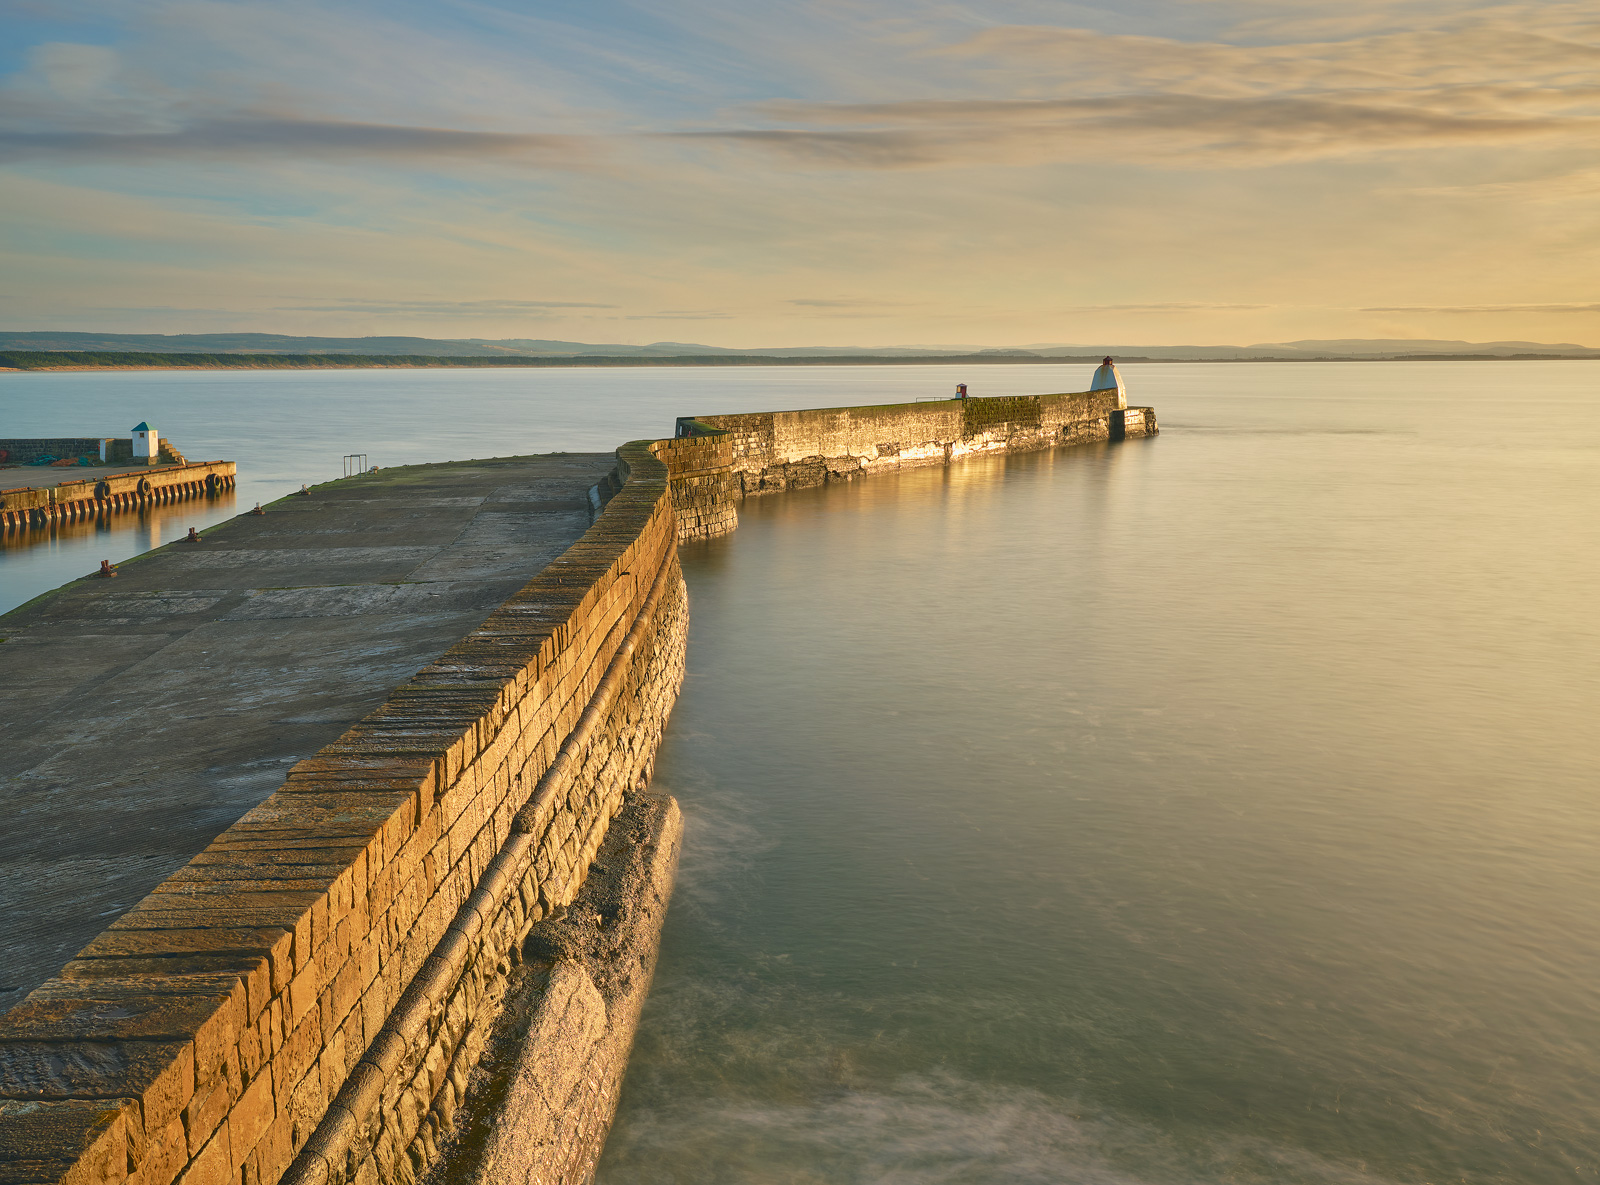 This was the first of the winter evening sunset shots I took overlooking Burghead harbour from a rocky podium with the golden...